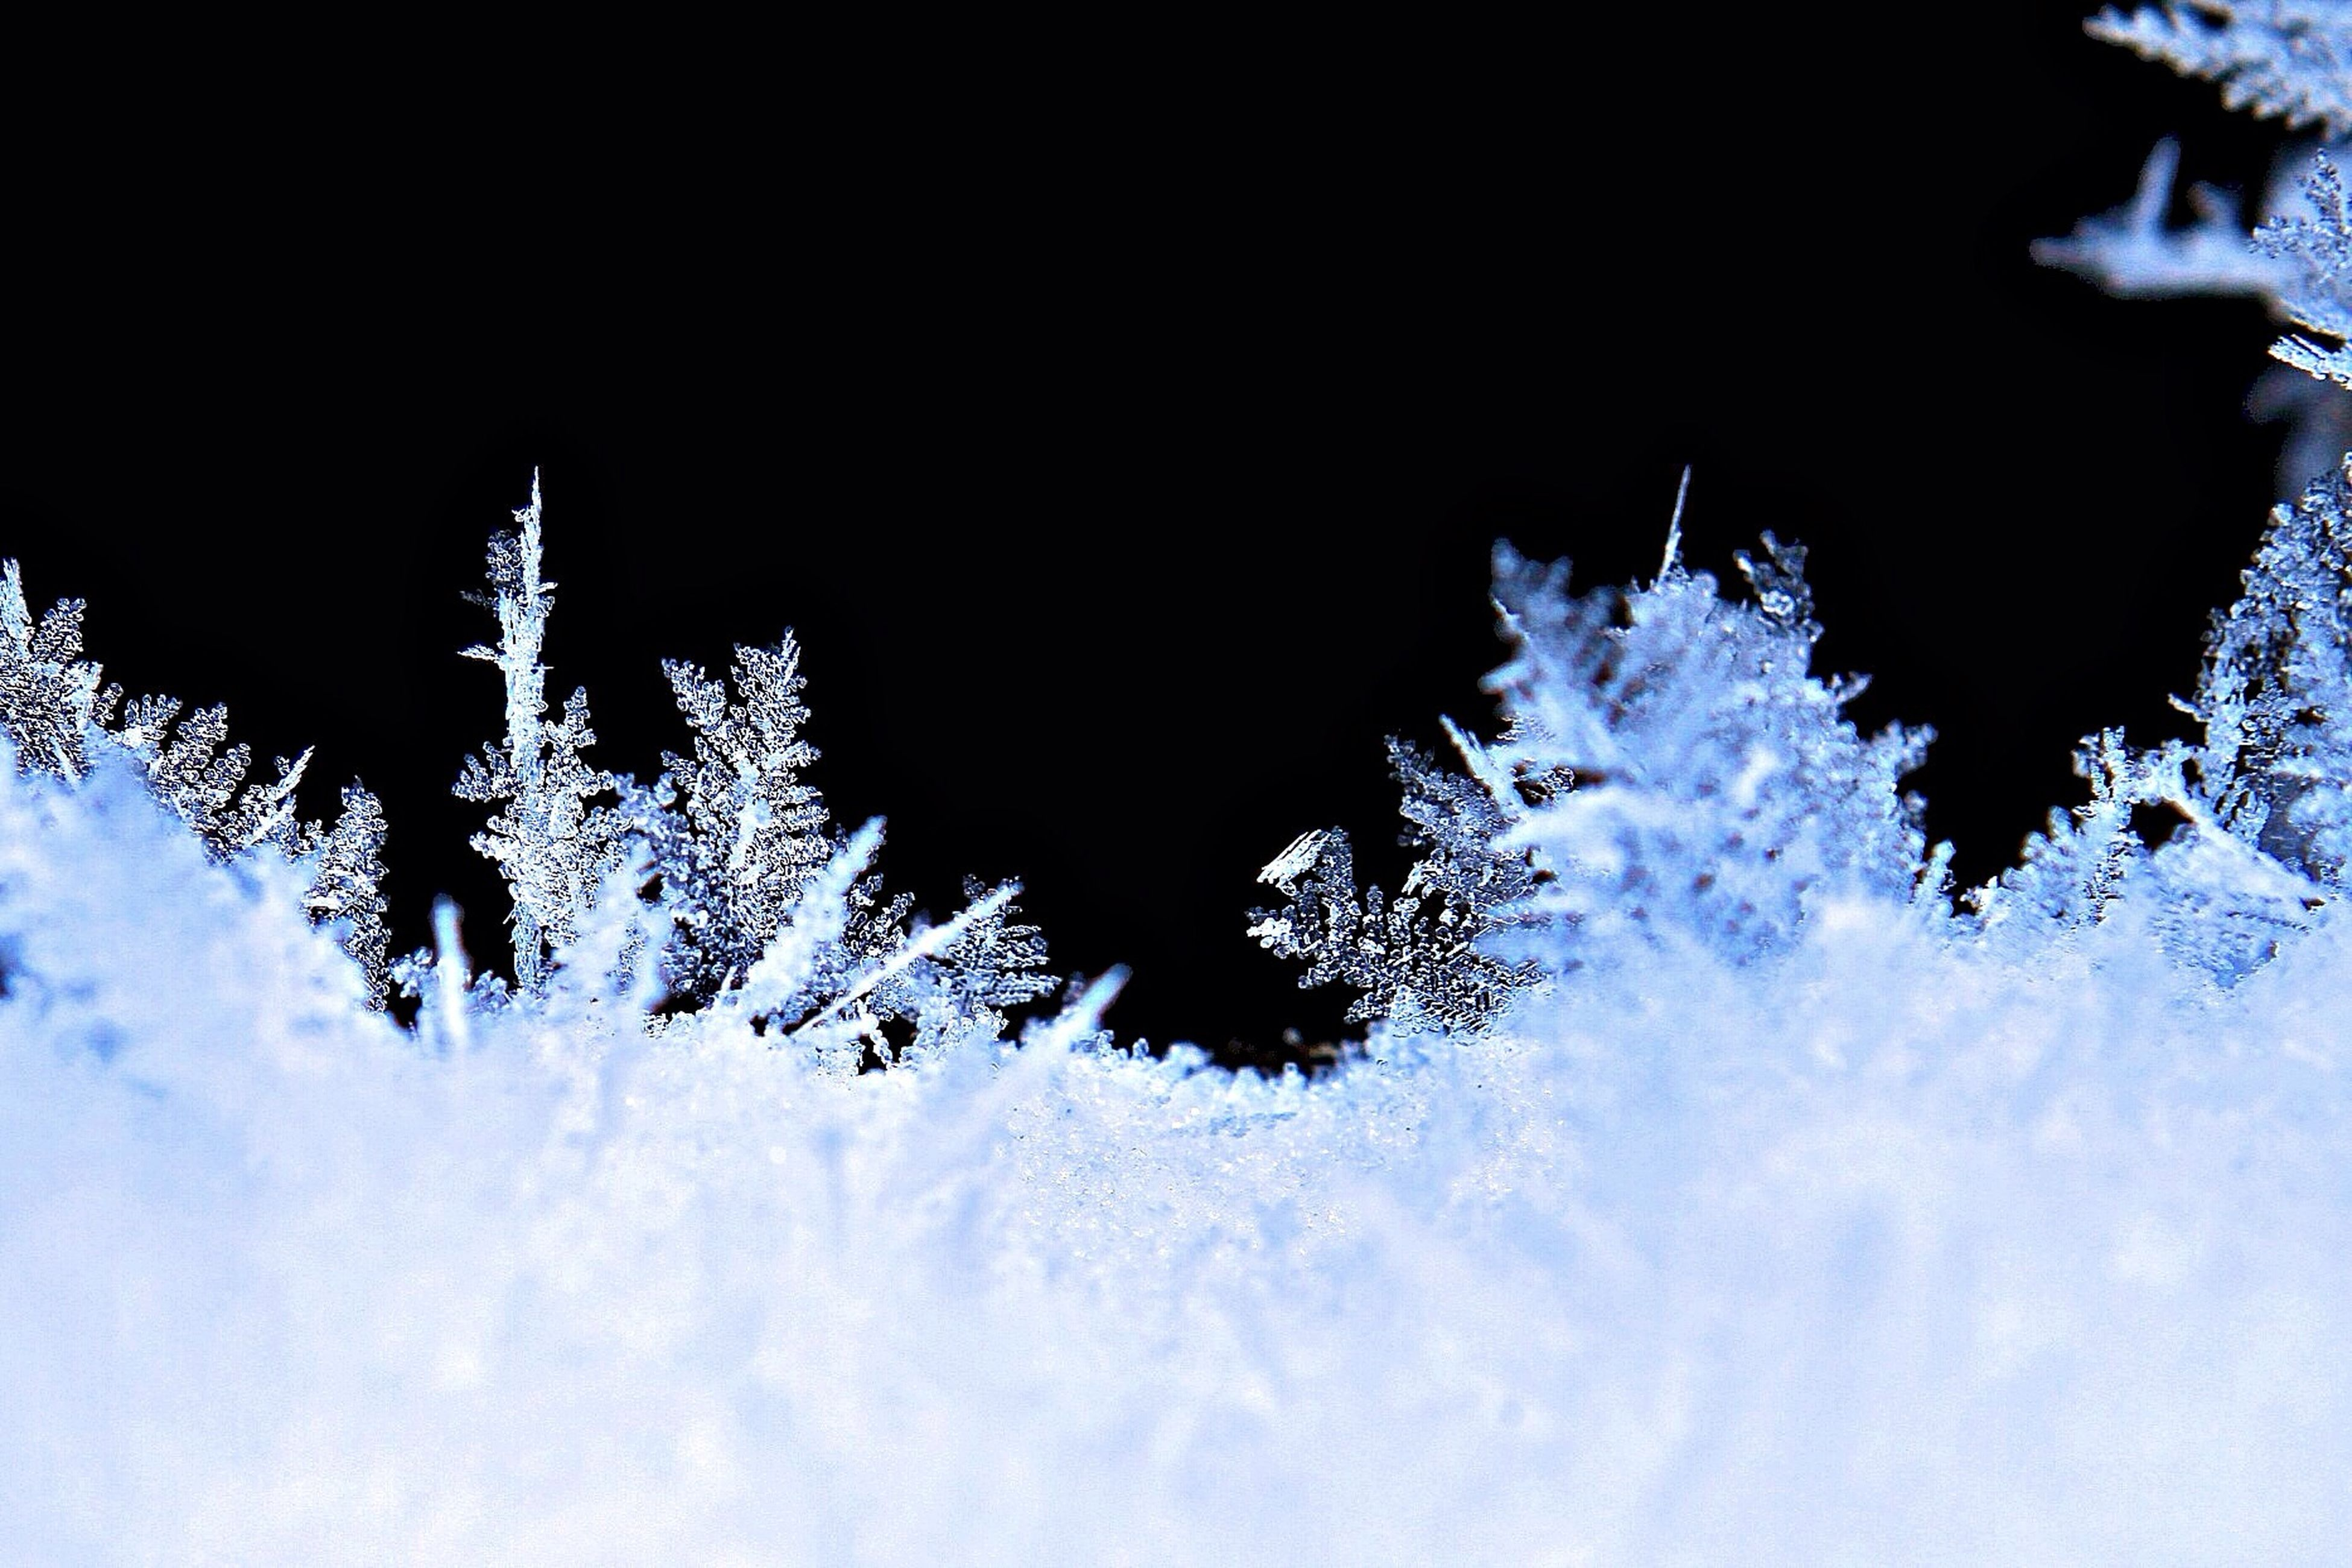 snow, winter, cold temperature, low angle view, night, tree, season, nature, clear sky, sky, beauty in nature, growth, weather, tranquility, frozen, branch, outdoors, bare tree, covering, no people